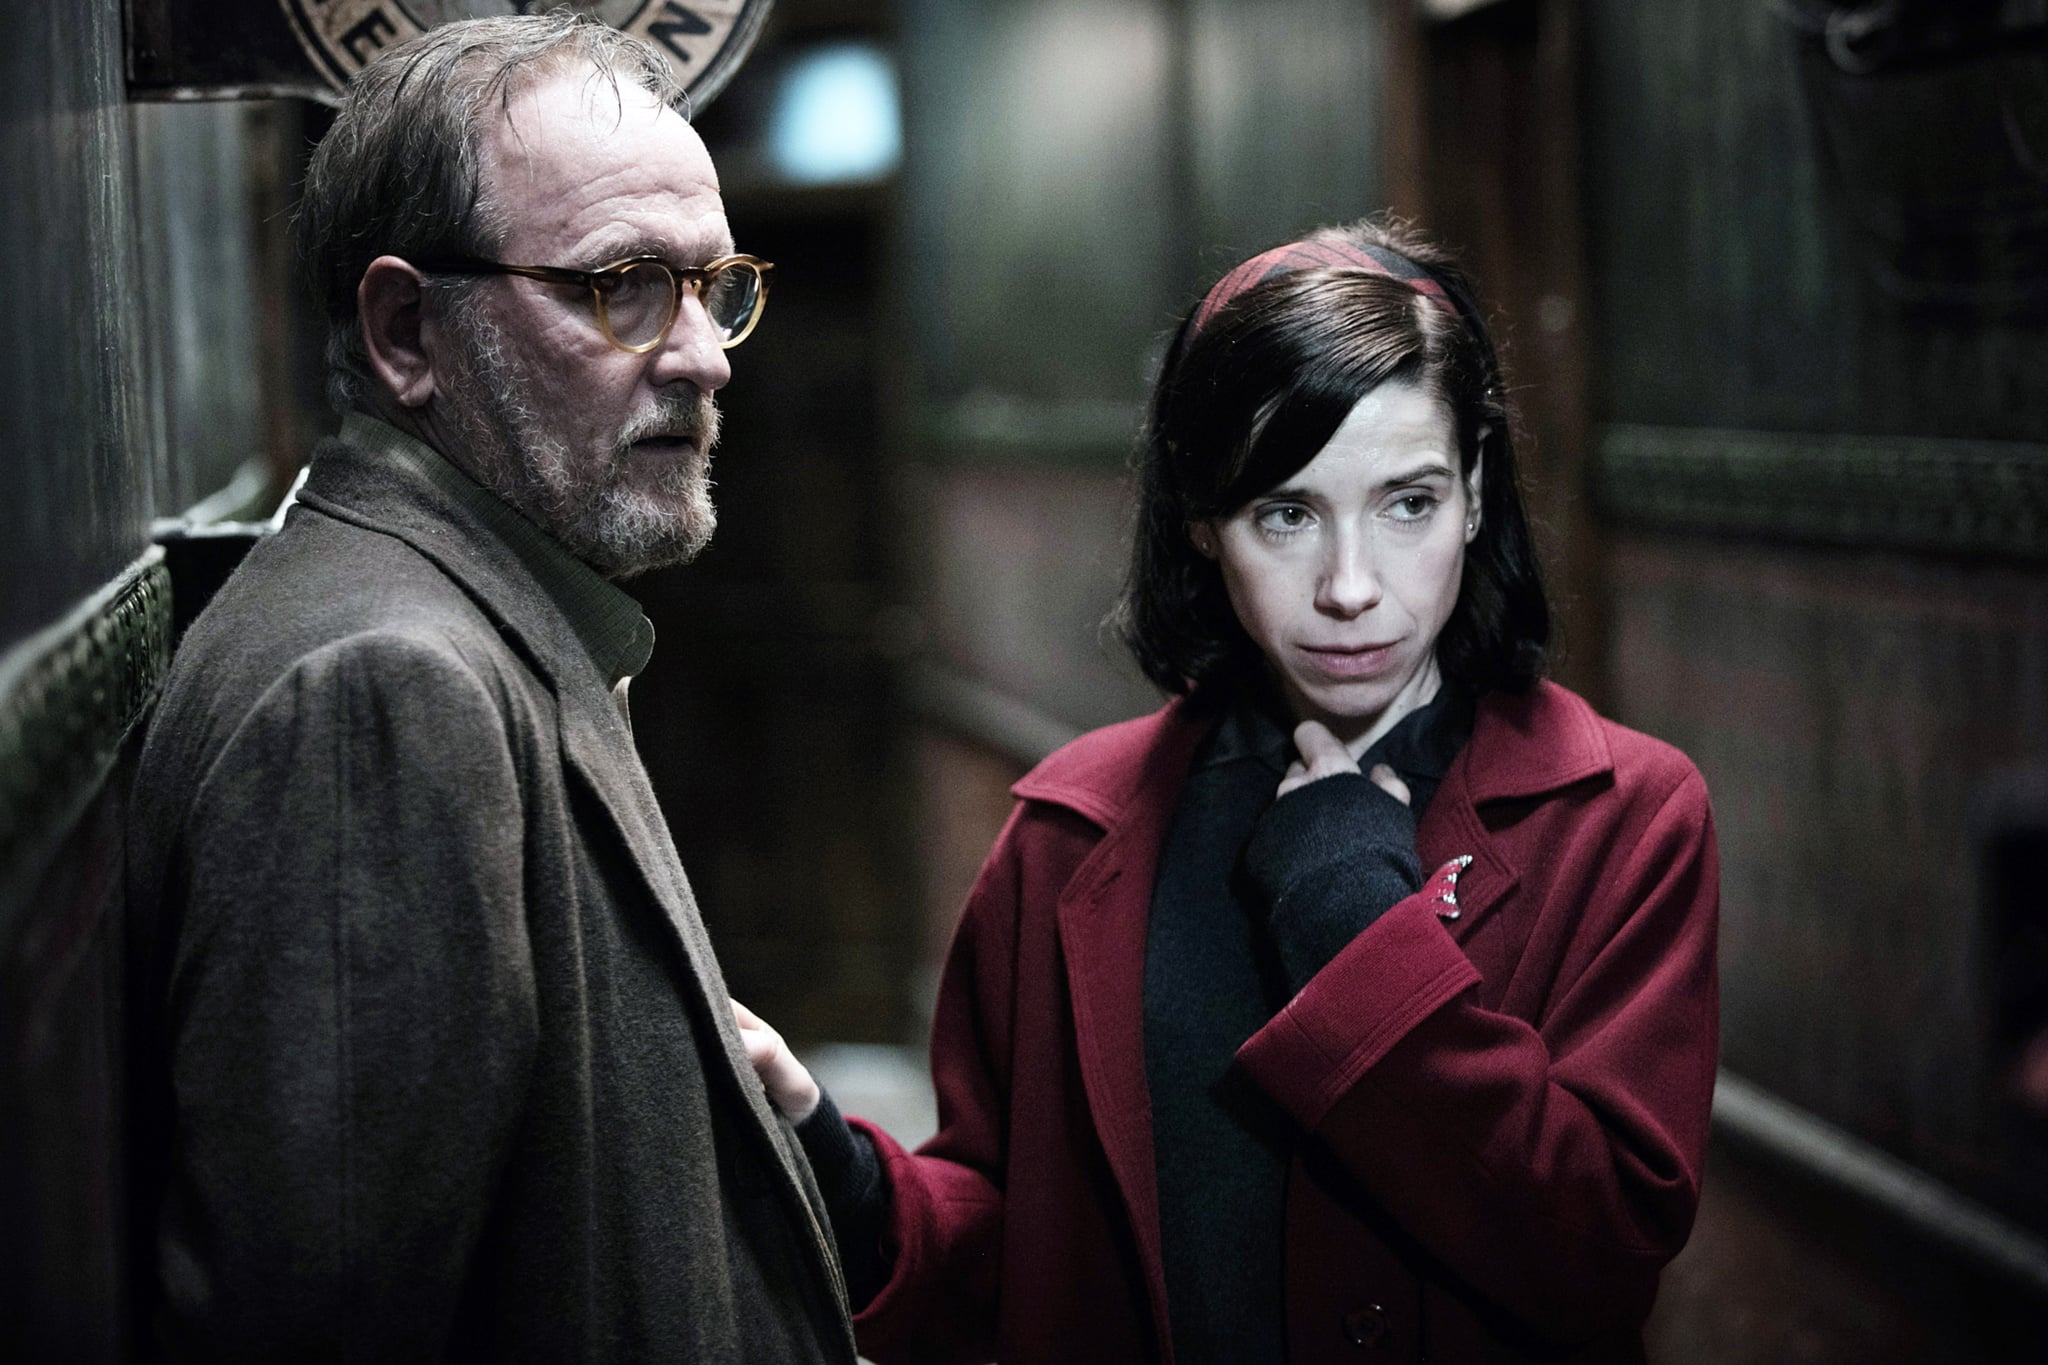 THE SHAPE OF WATER, from left, Richard Jenkins, Sally Hawkins, 2017. ph: Kerry Hayes. Fox Searchlight Pictures. All Rights reserved/courtesy Everett Collection